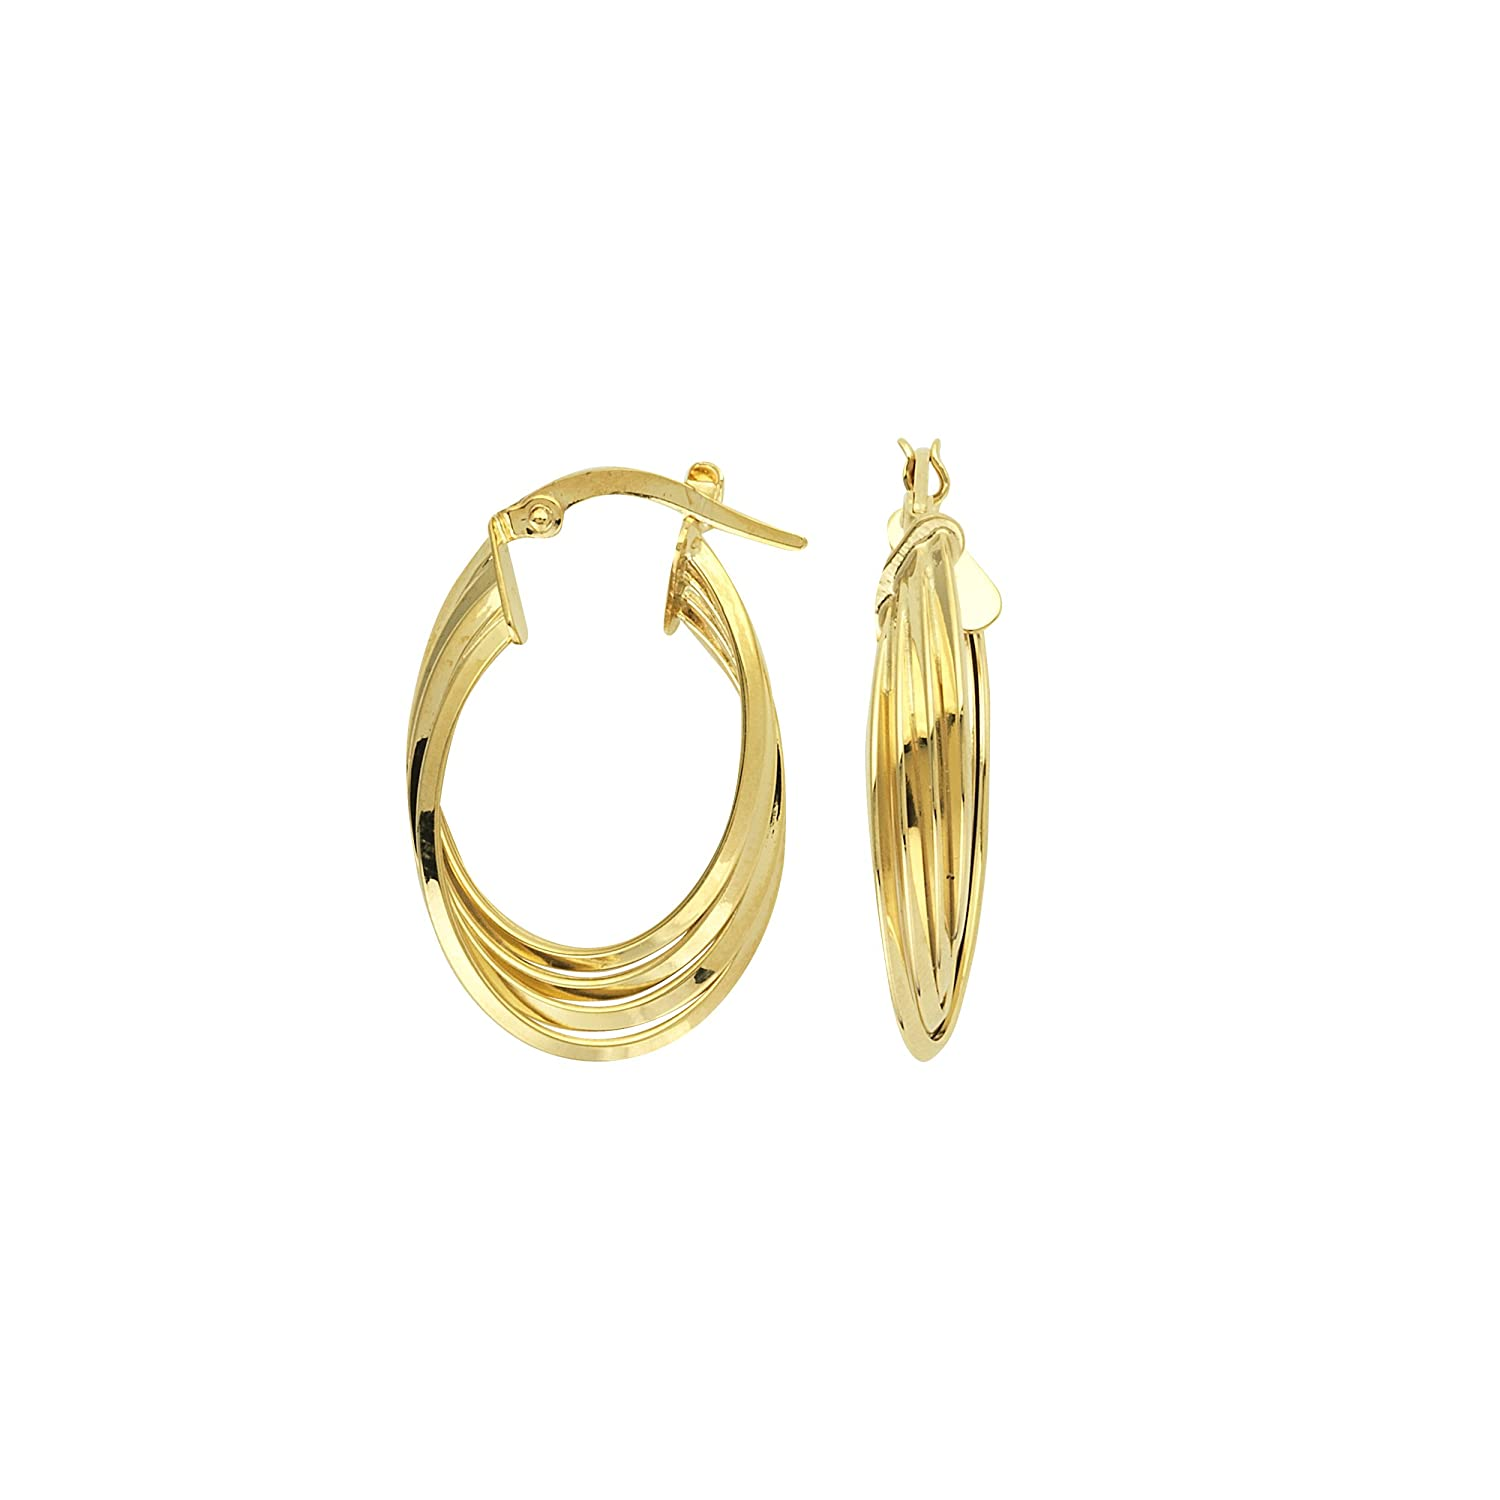 10KT GOLD TRIPPLE TWIST WAVE OVAL HOOP EARRINGS HOOP EARRINGS